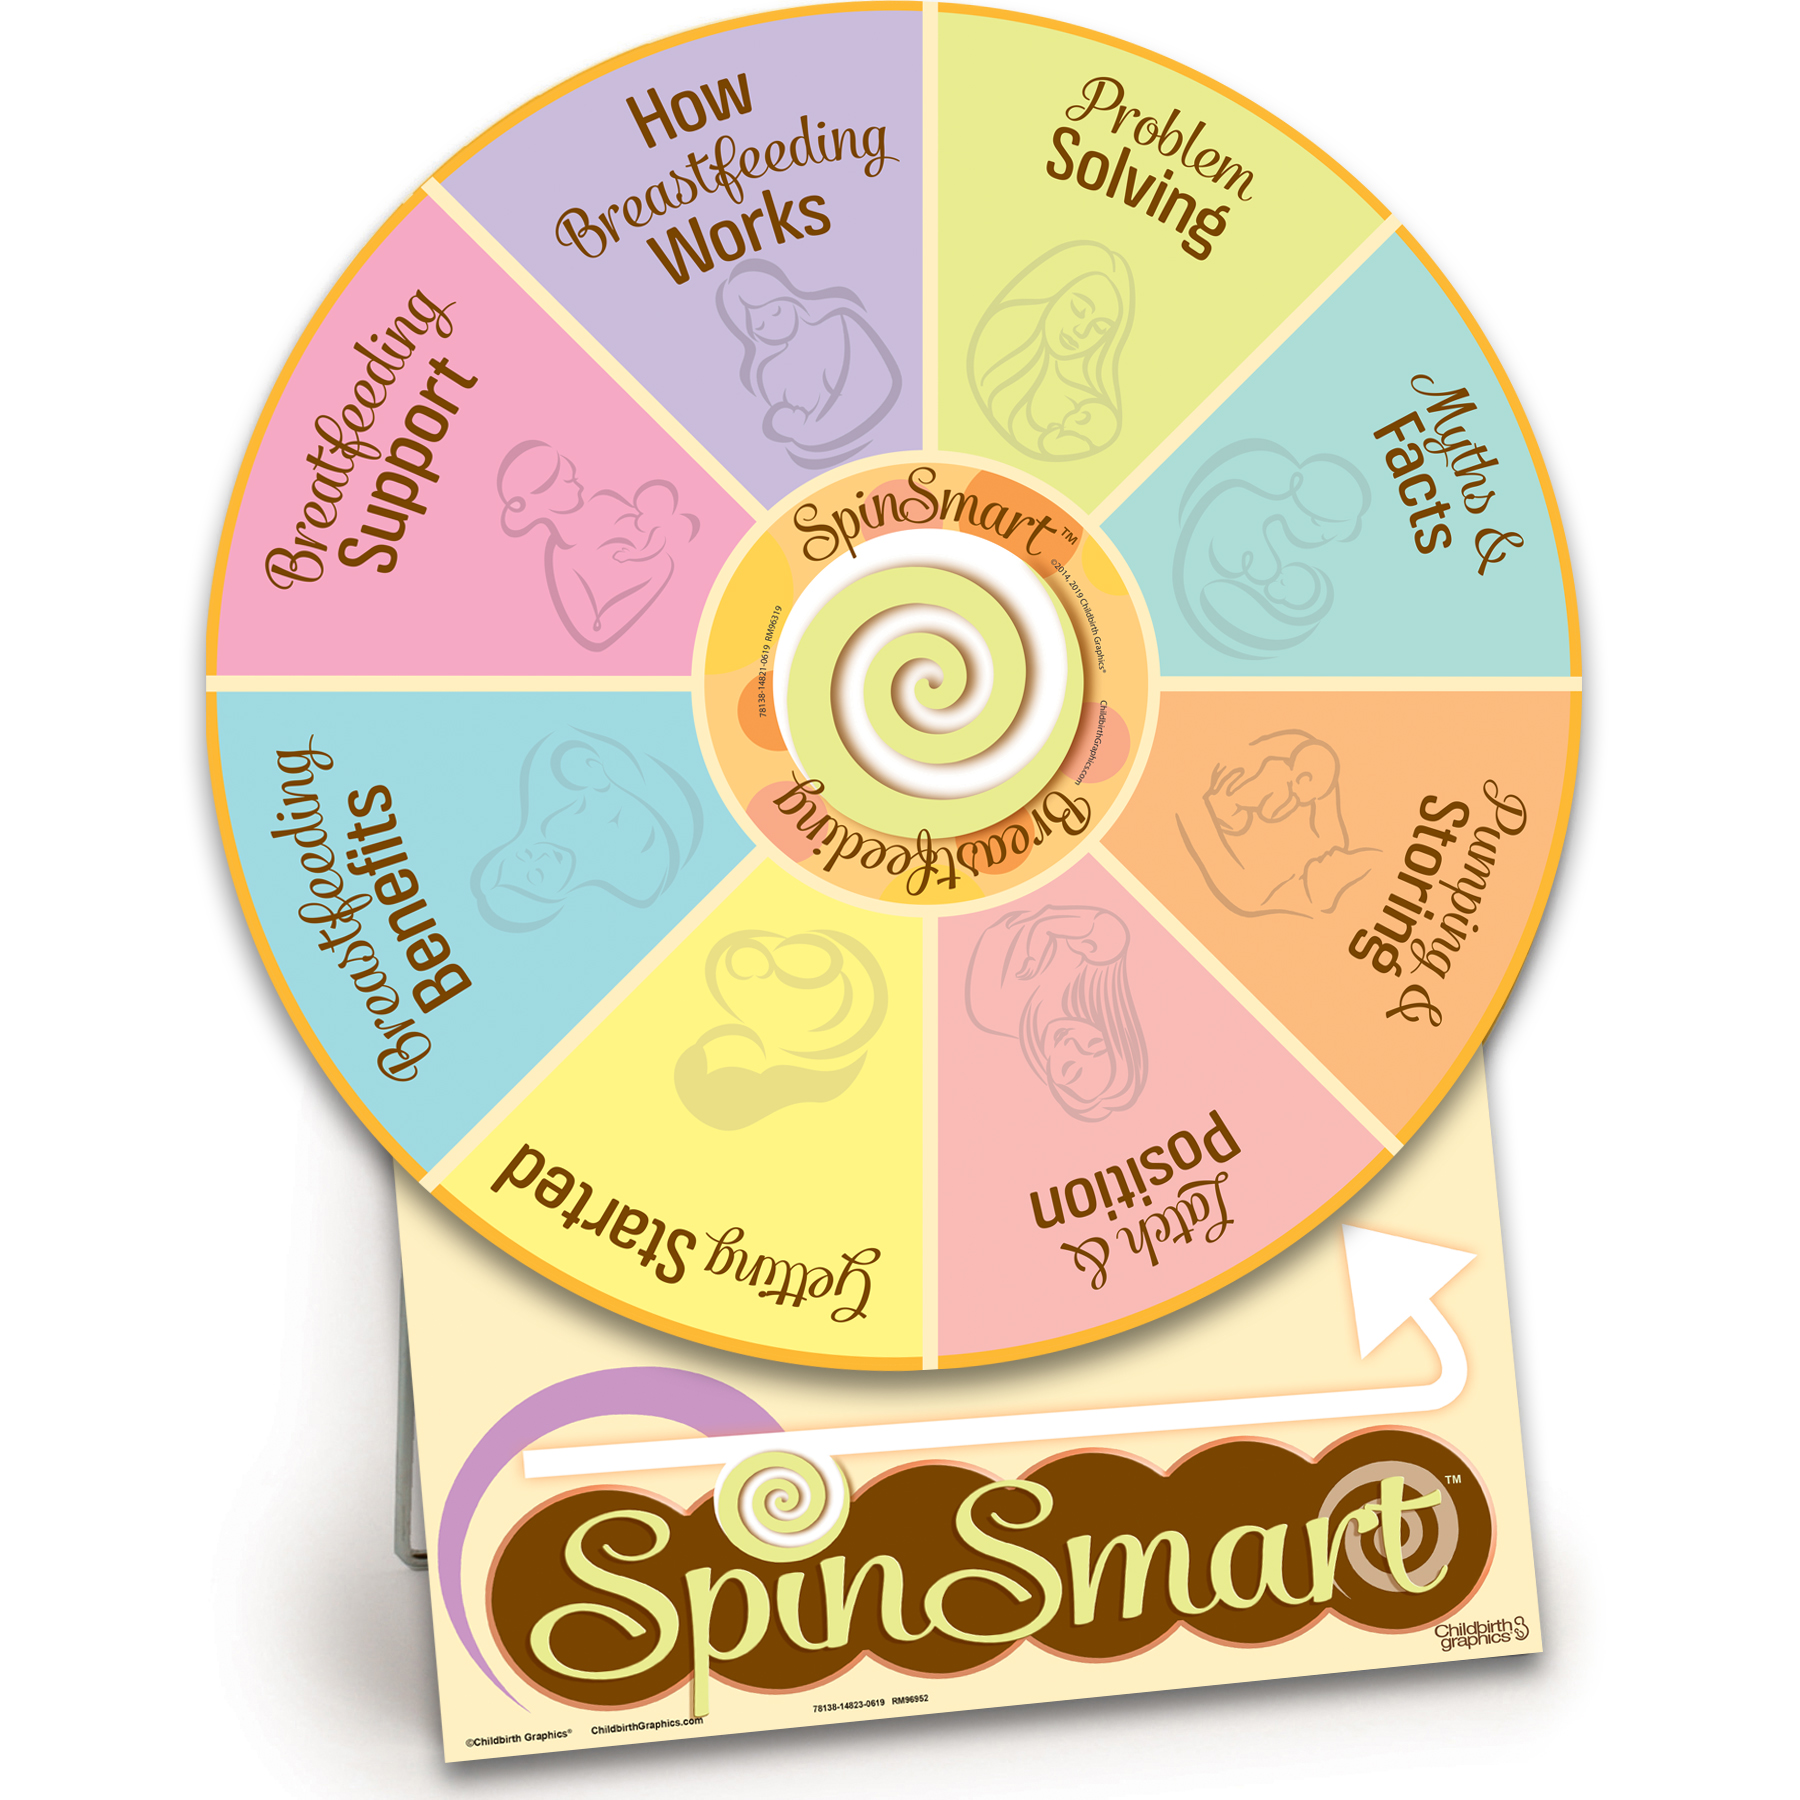 SpinSmart Breastfeeding Wheel for breastfeeding education from Childbirth Graphics, lactation teaching activity, 78138